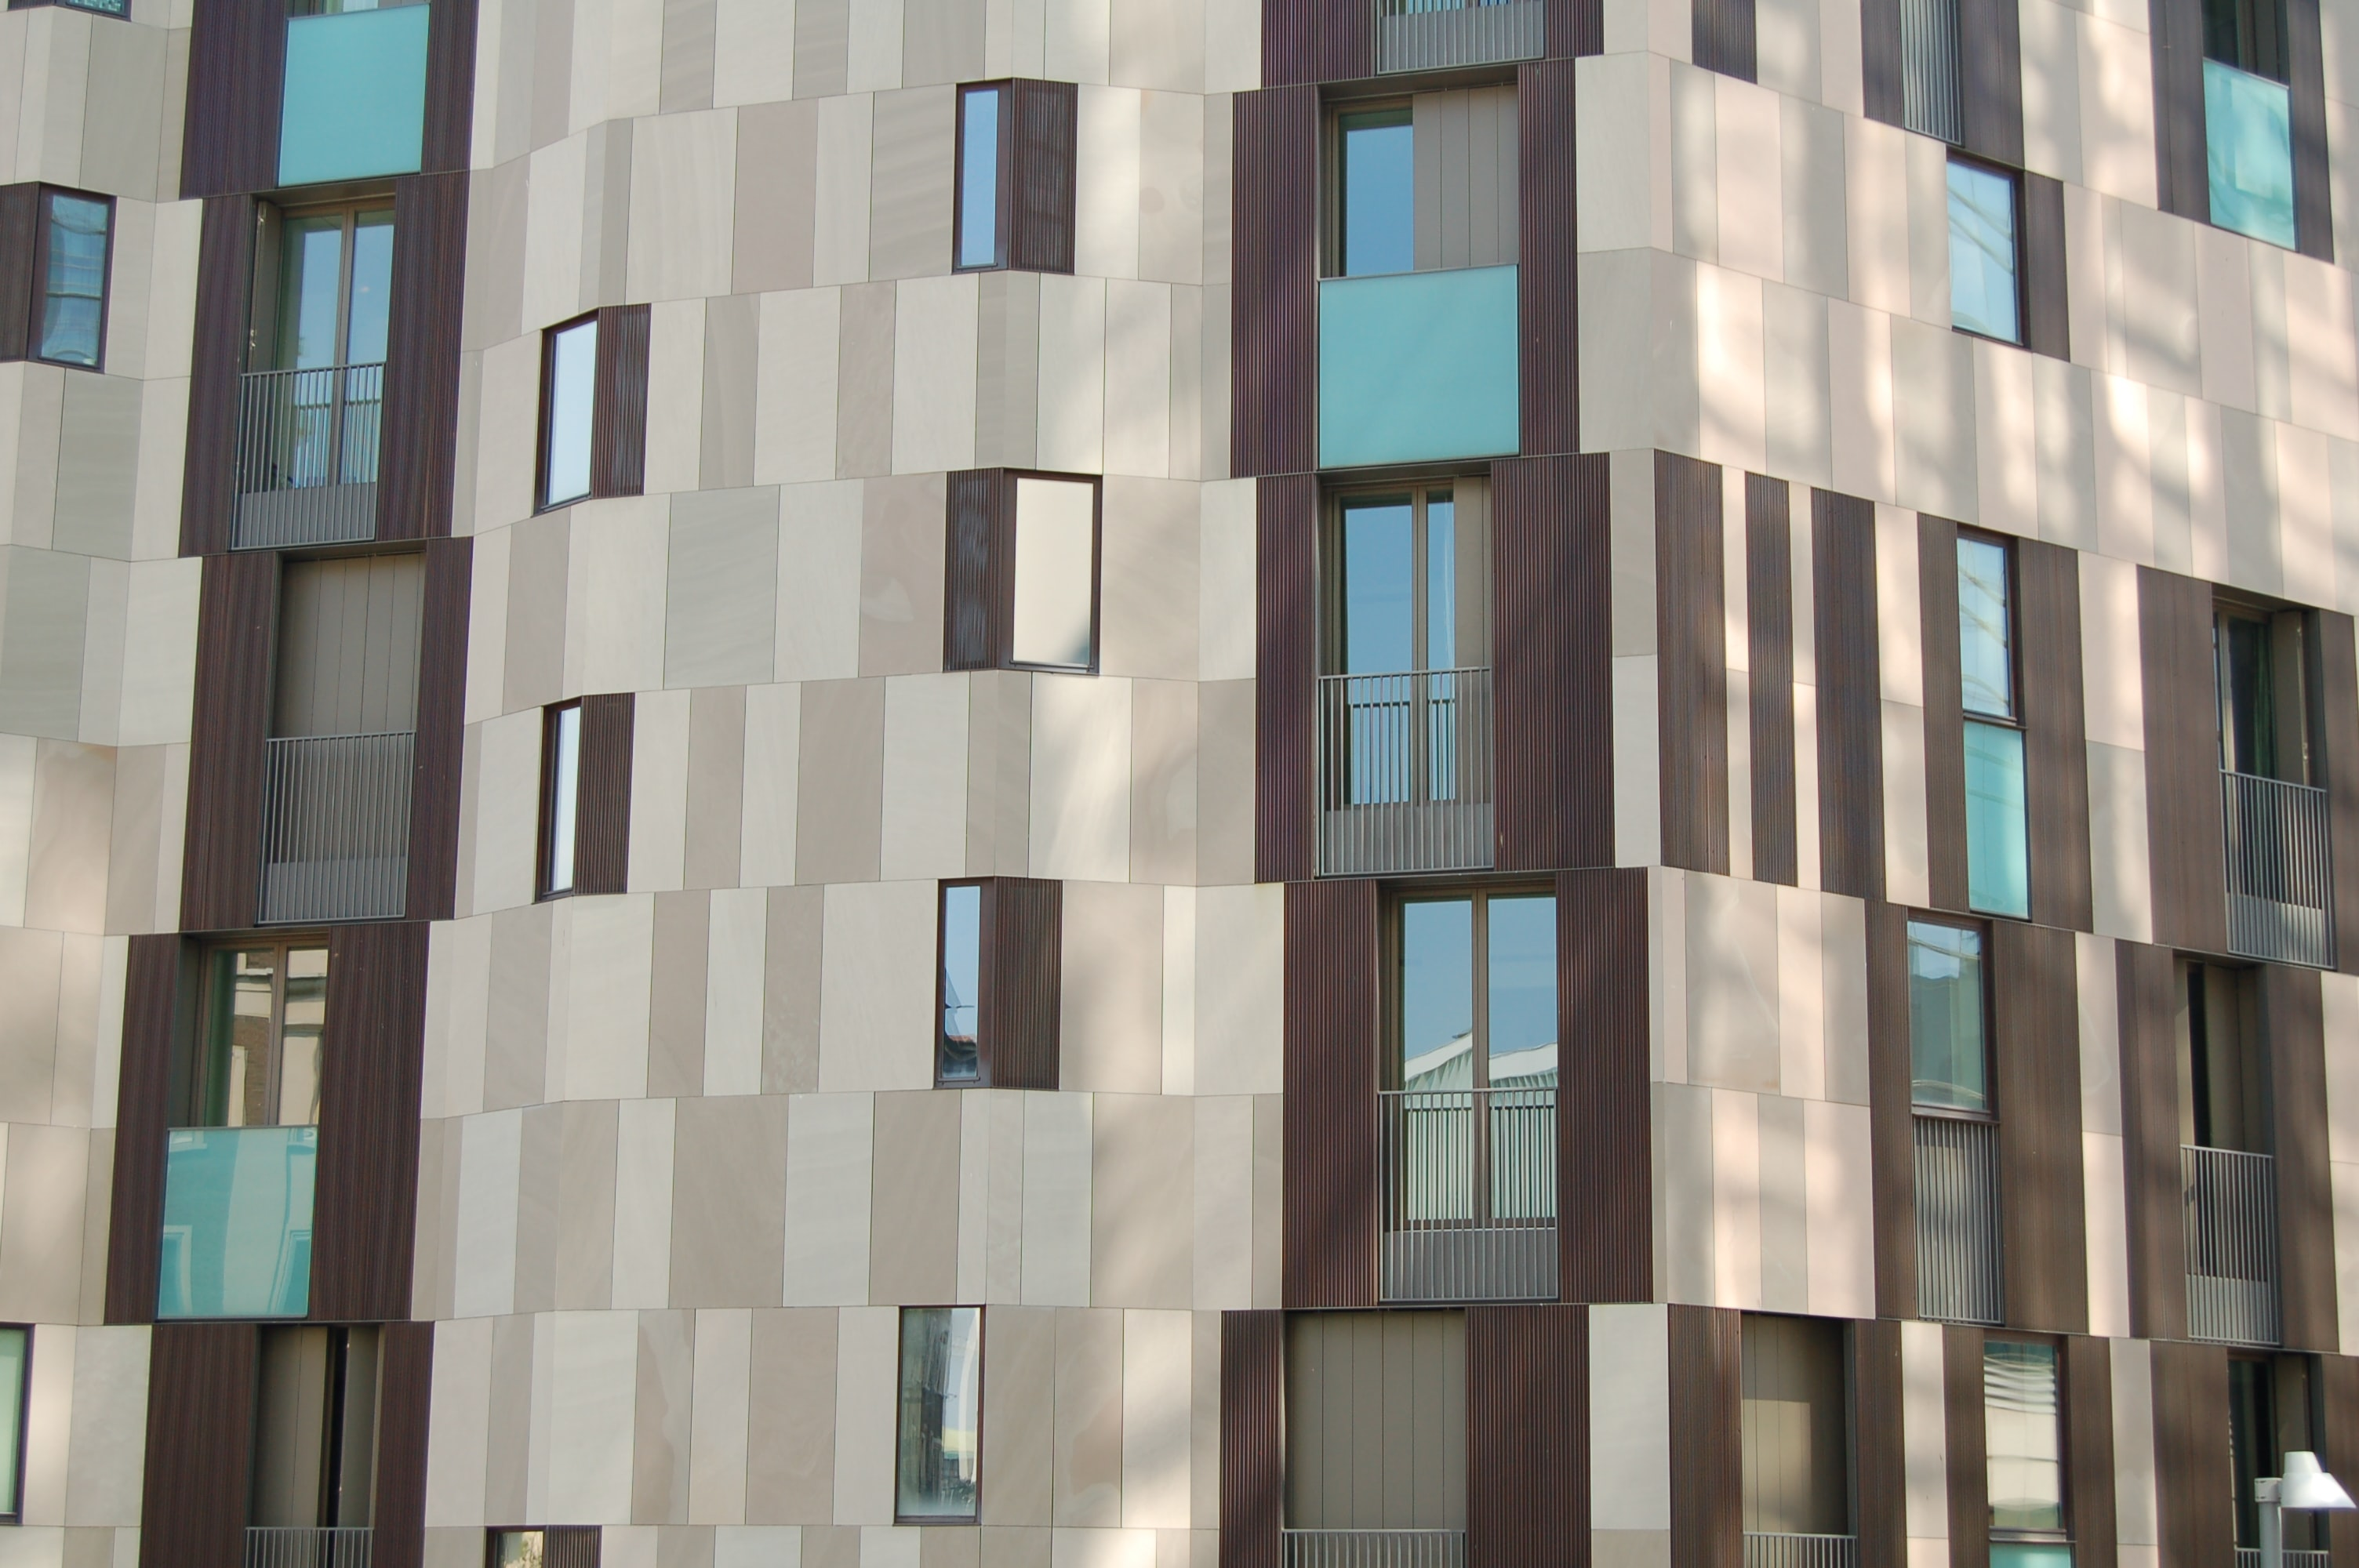 A brown and beige facade of a residential building